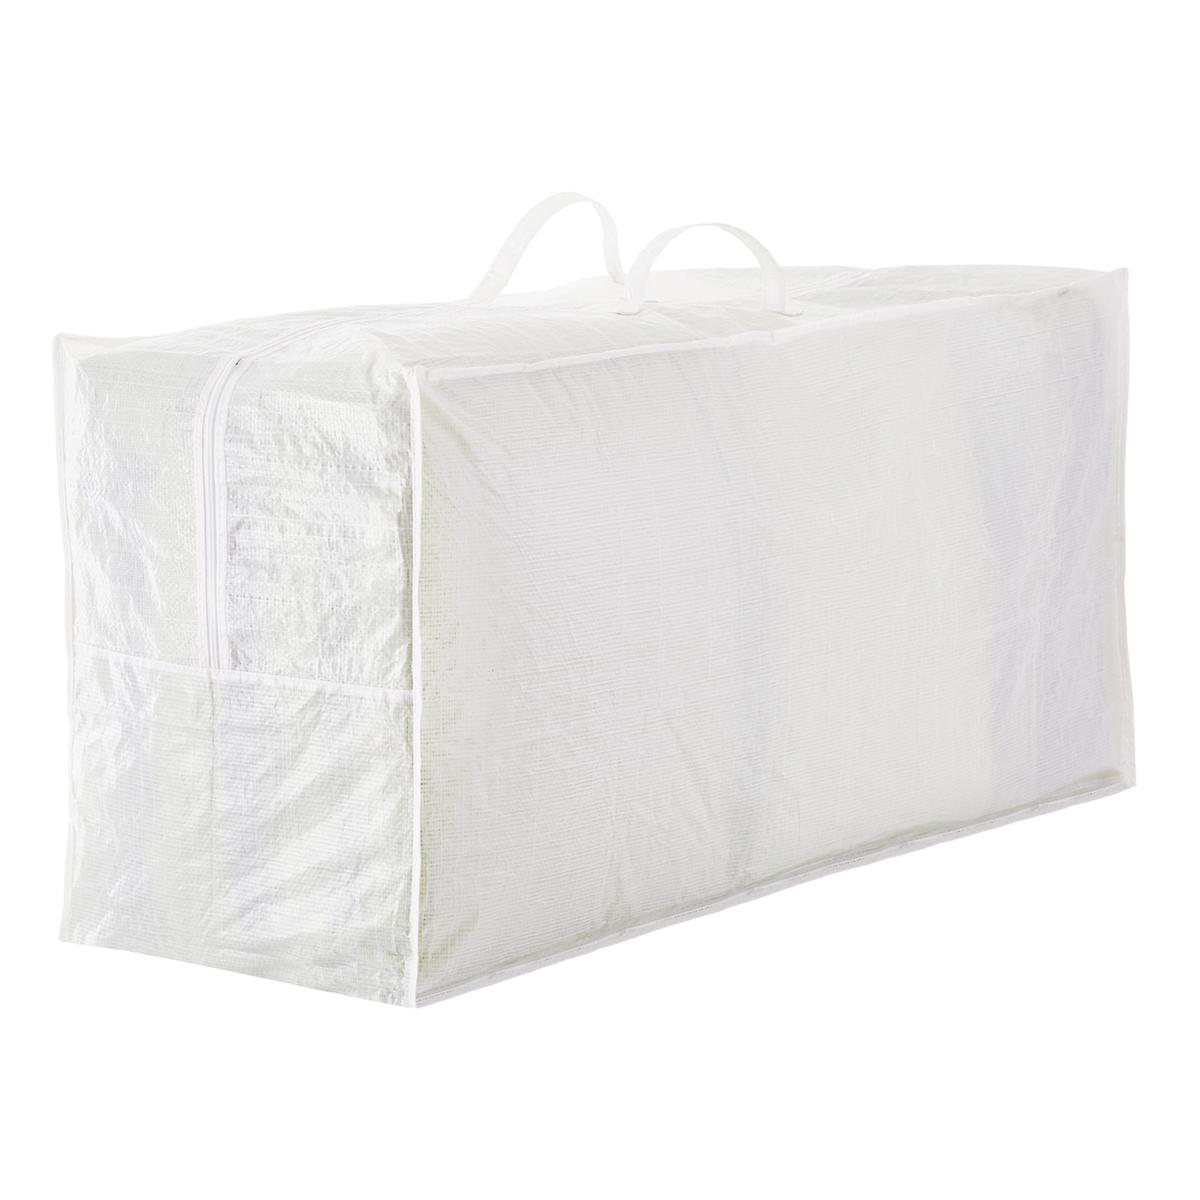 Outdoor Cushion Storage Bag